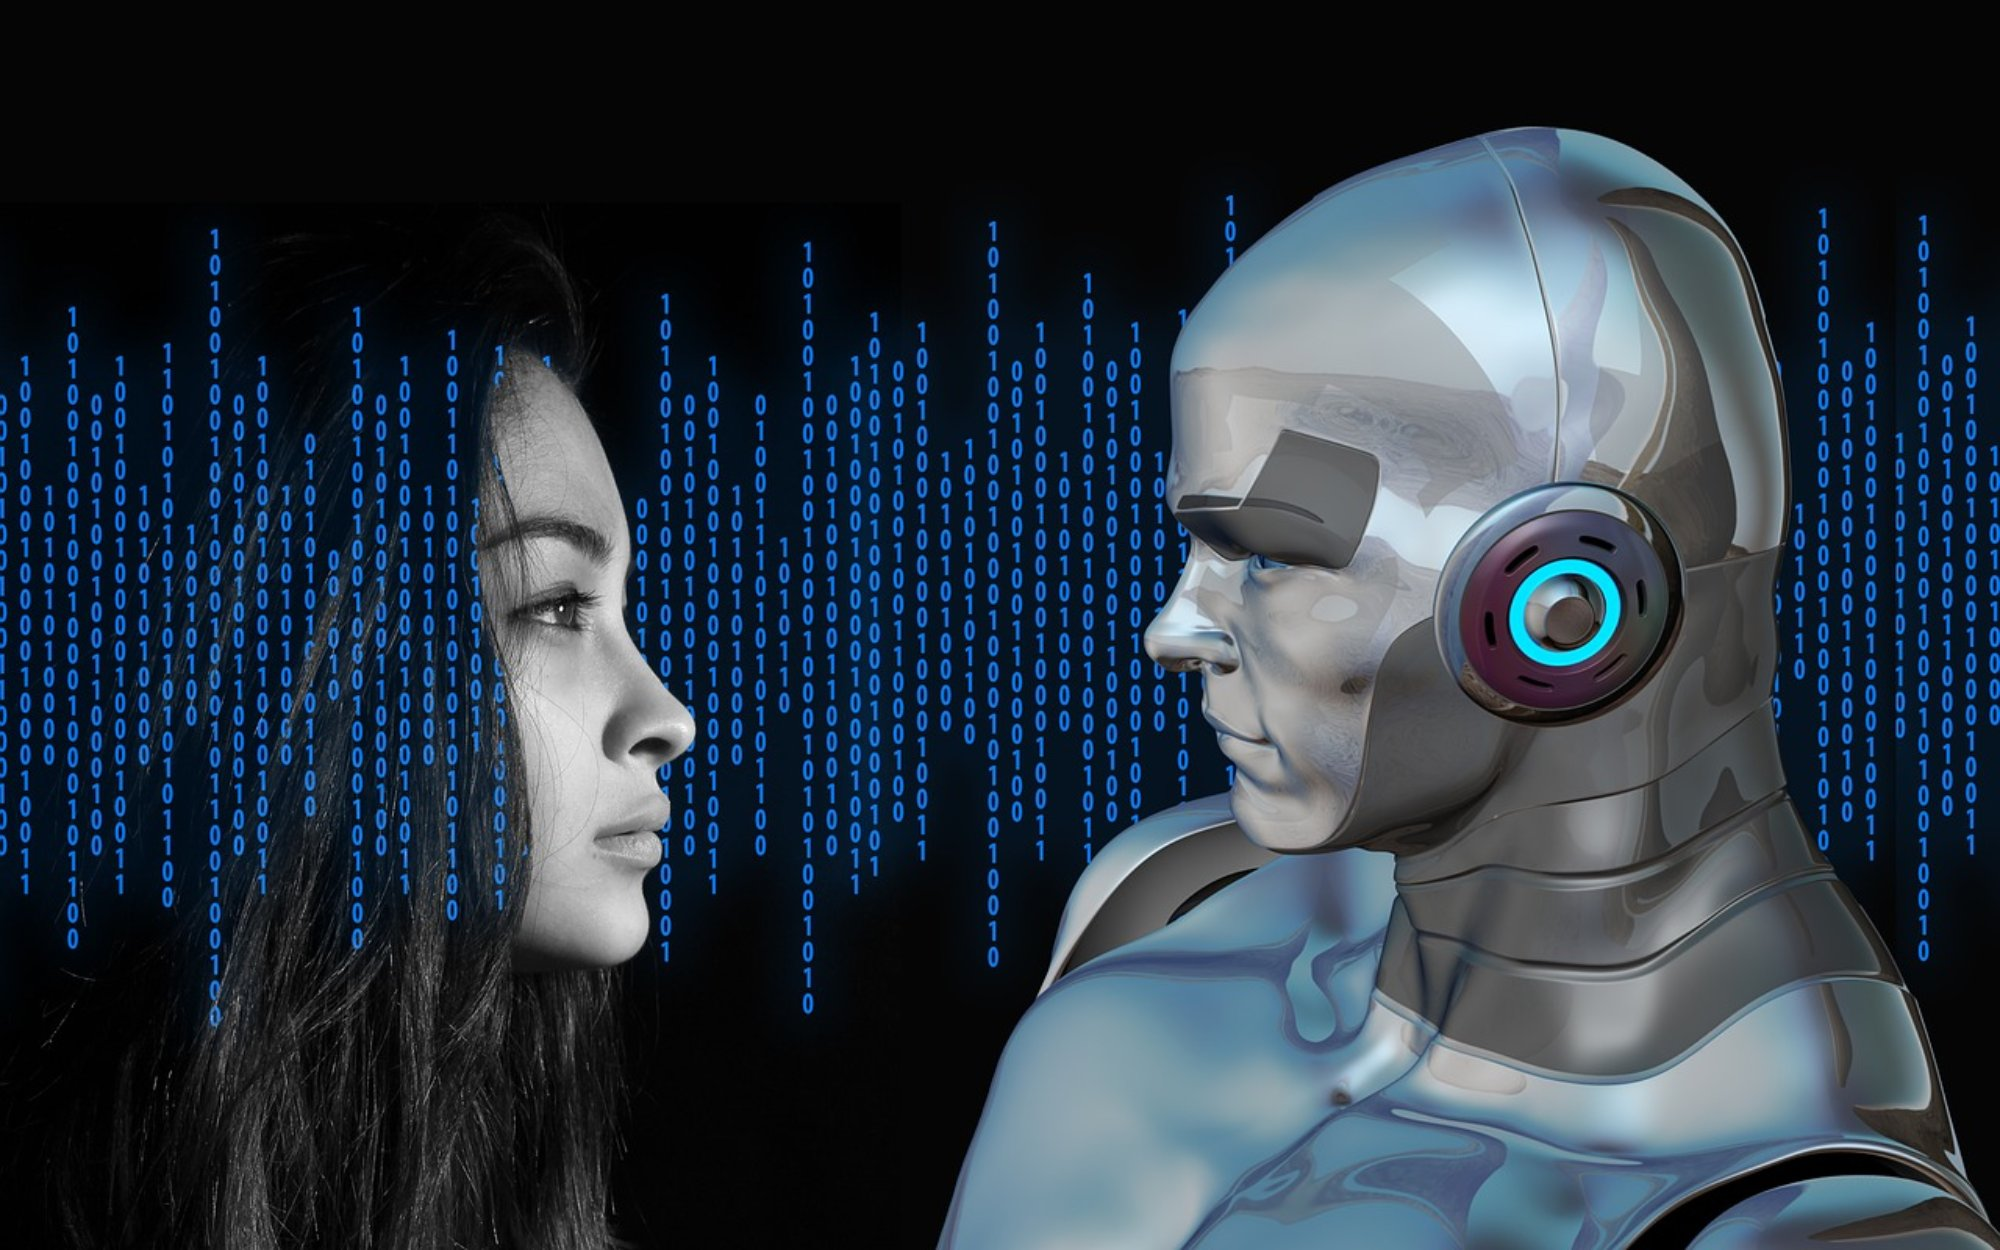 It's questionable to think artificial intelligence can match the human touch.